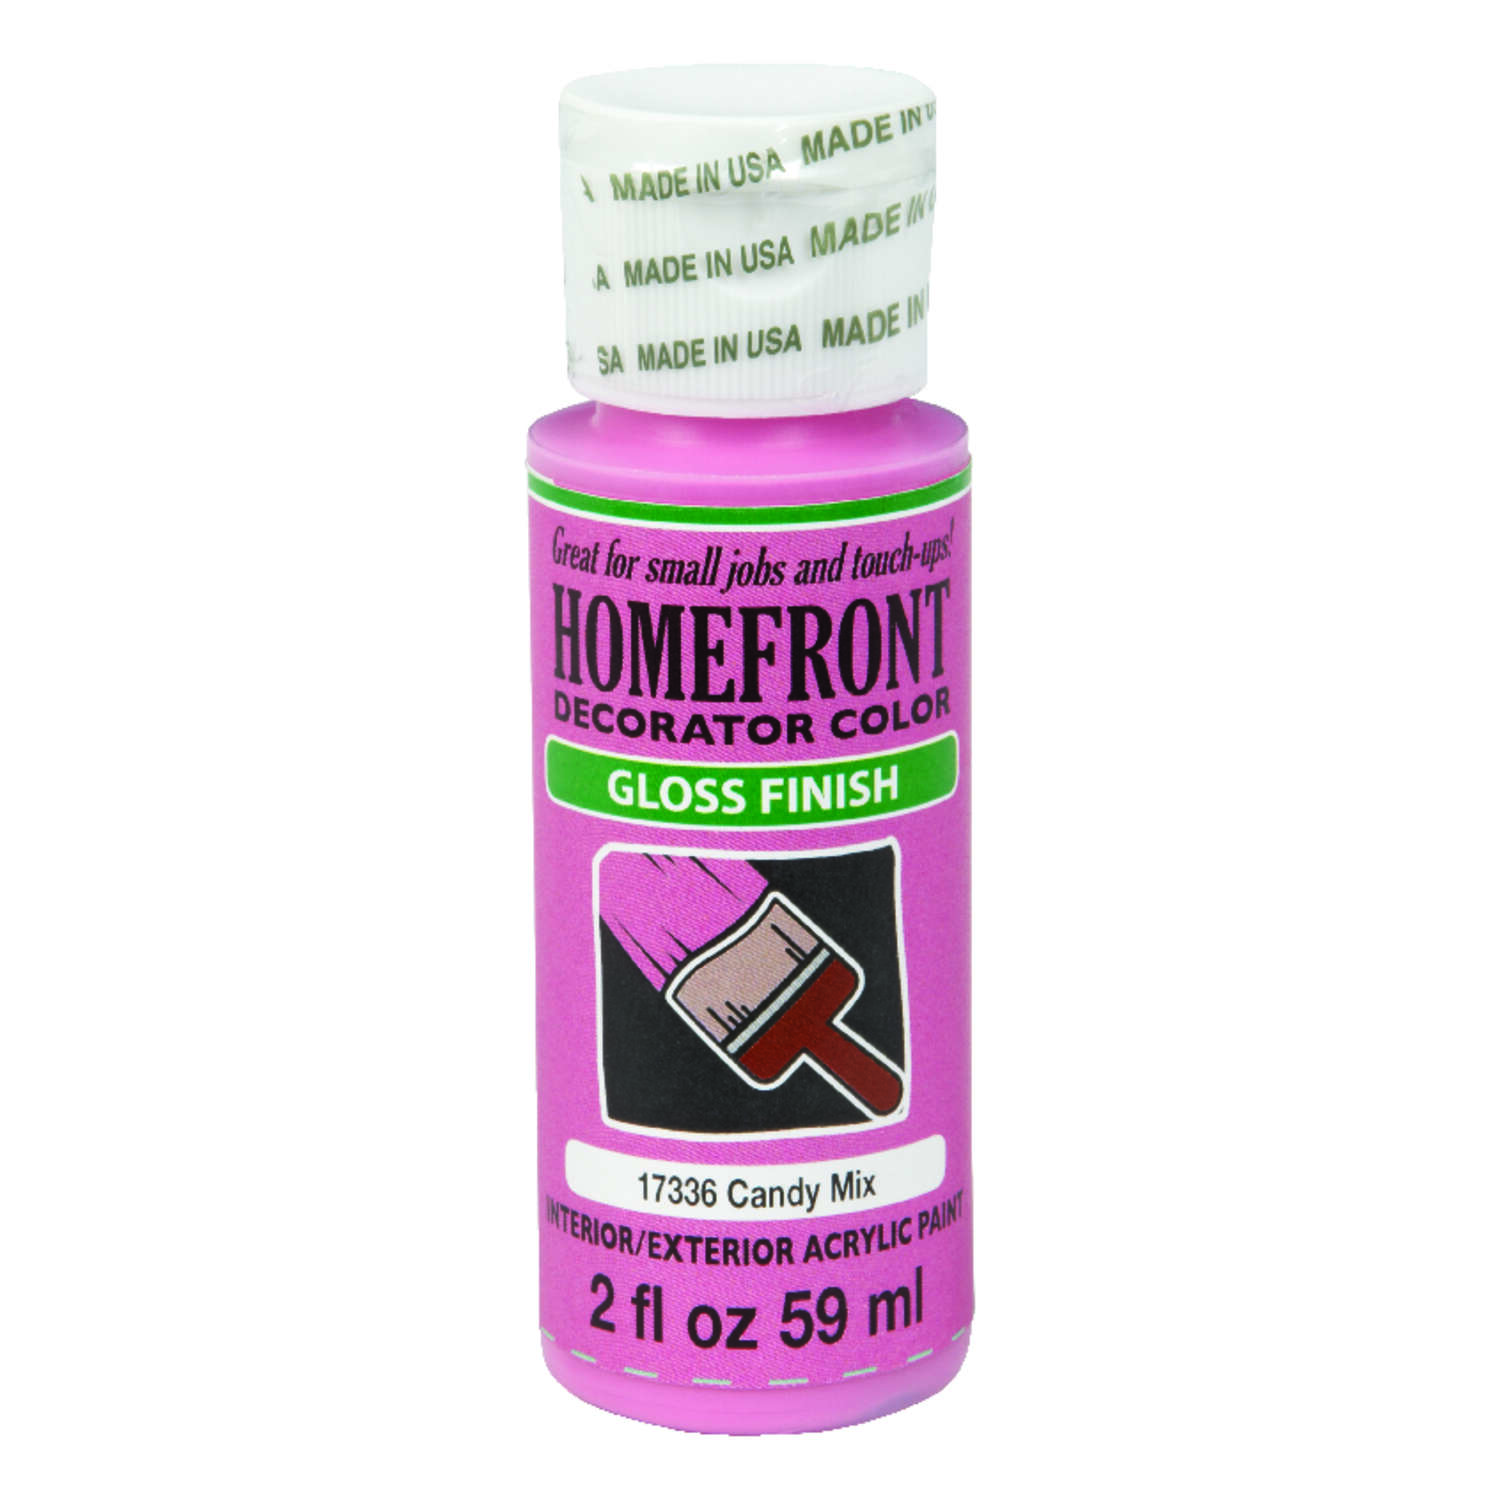 Homefront  Gloss  Candy Mix  Hobby Paint  2 oz.